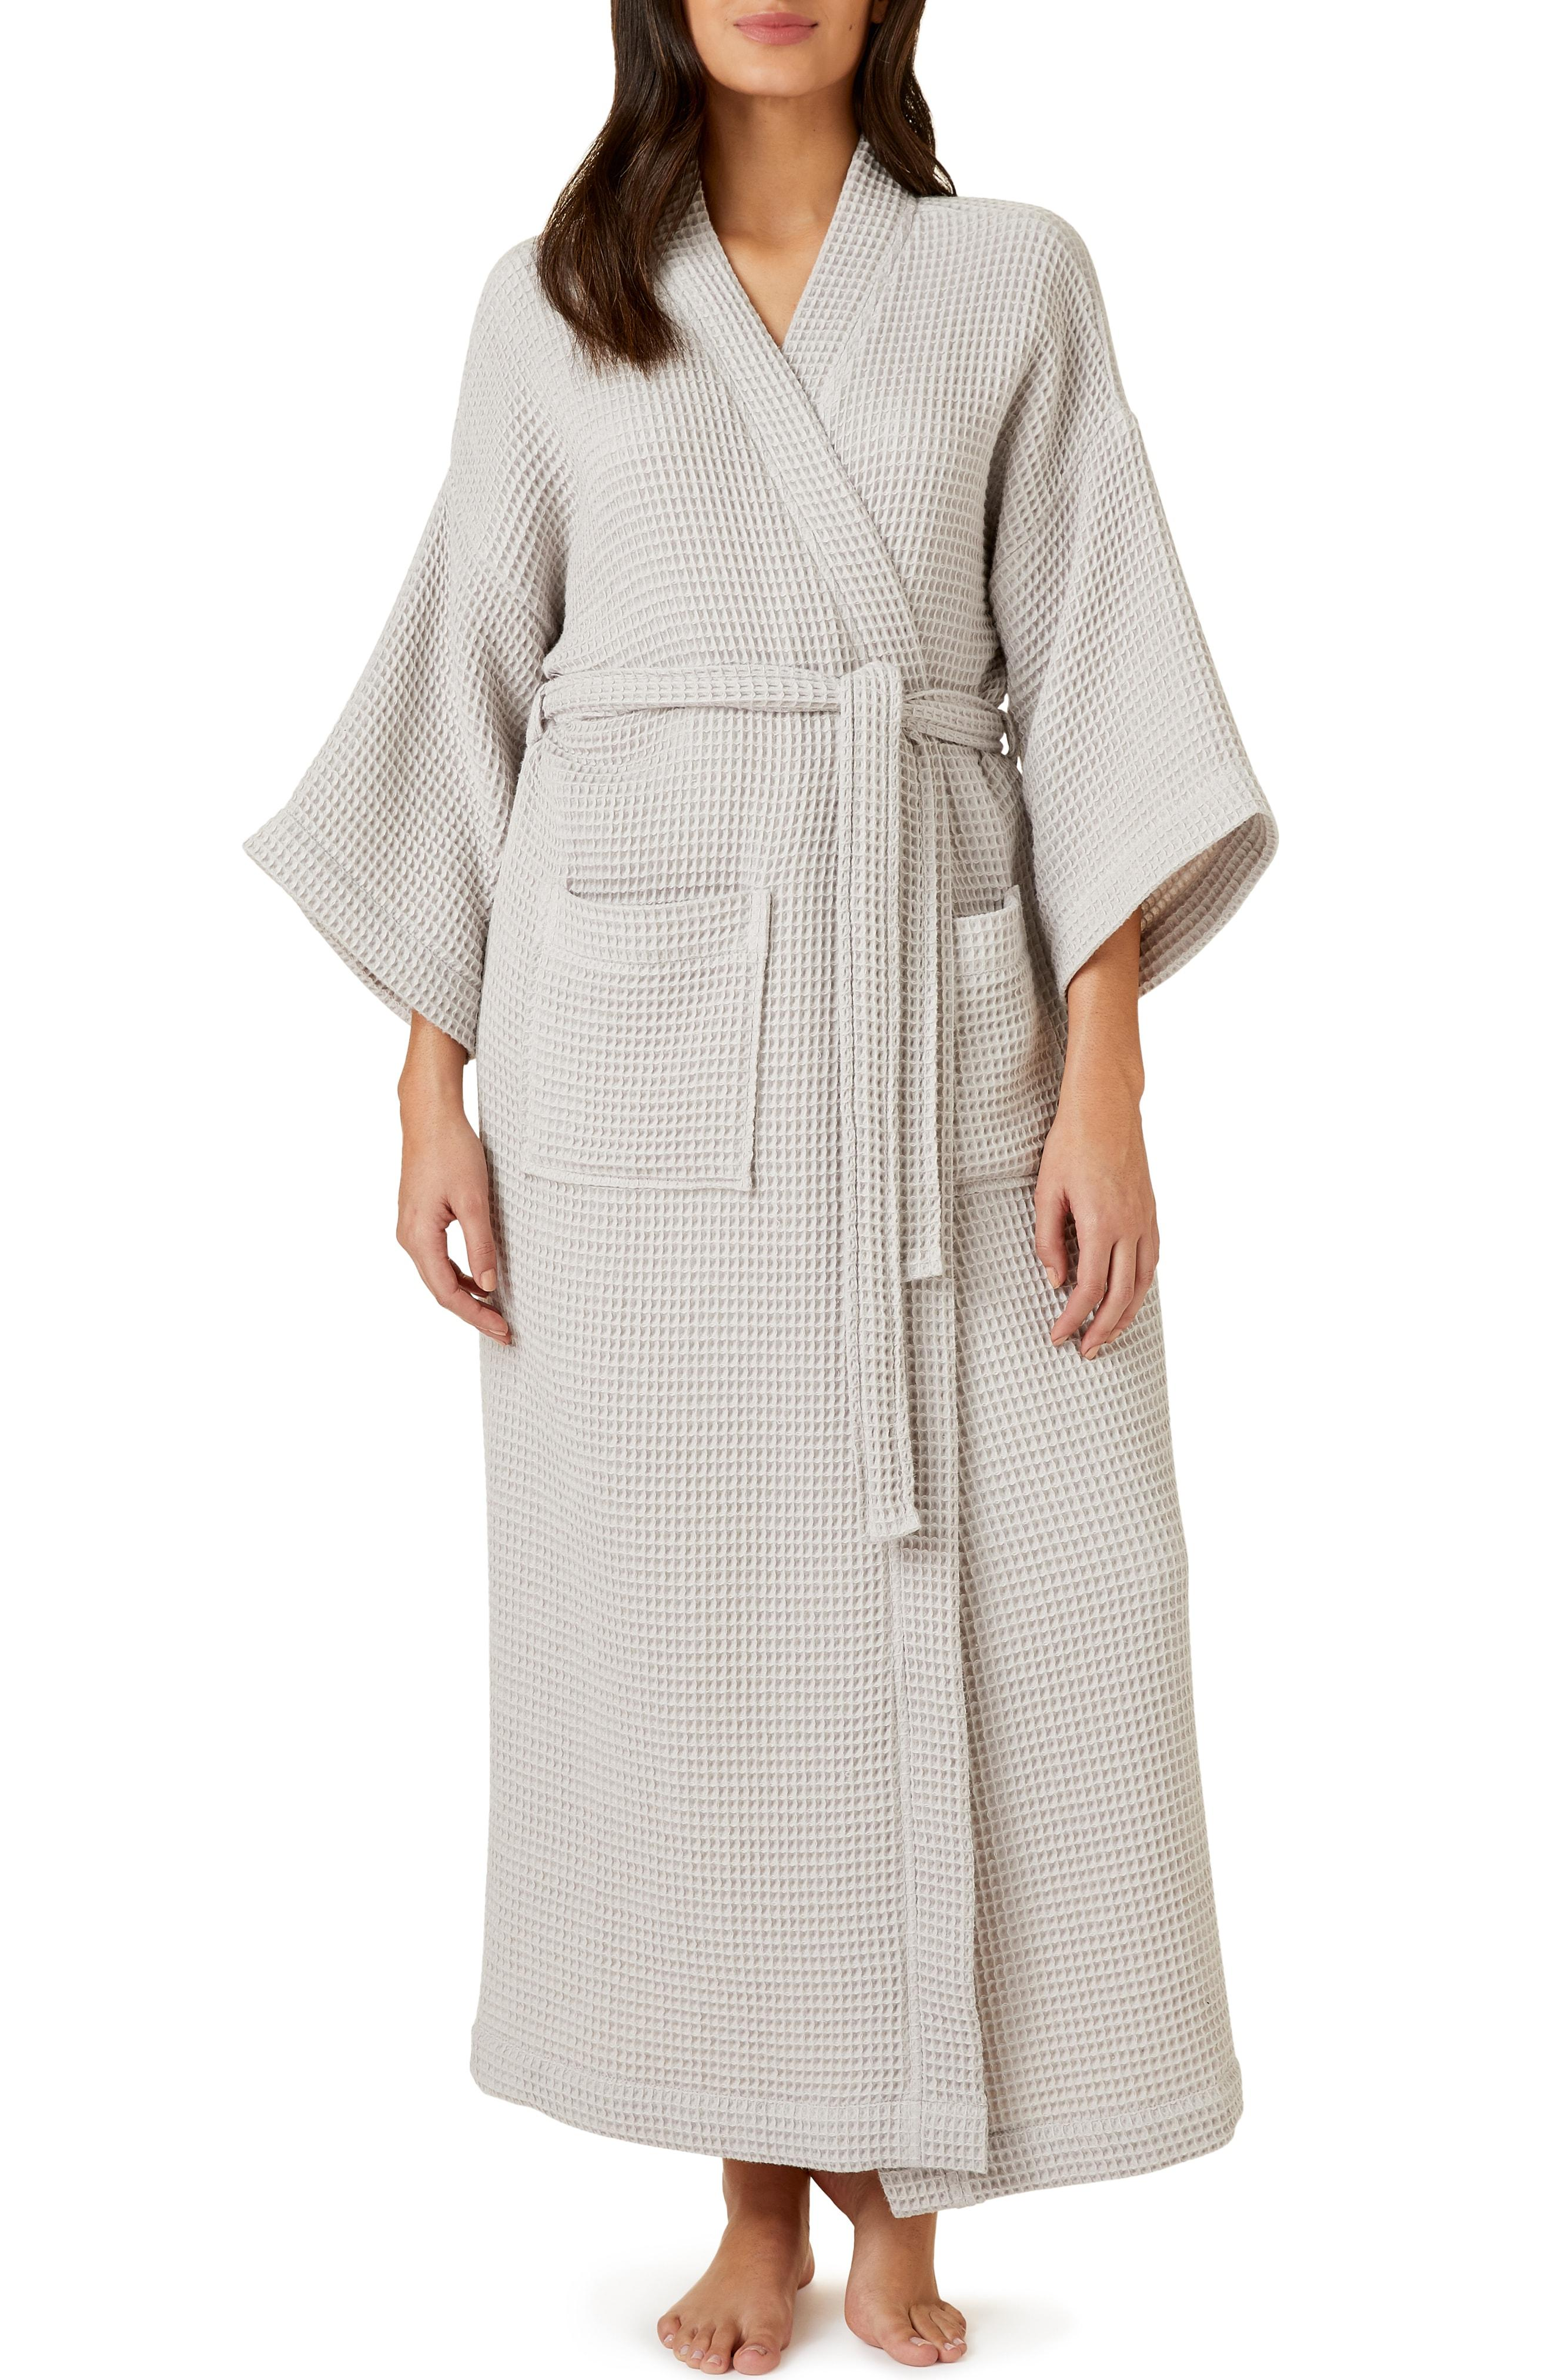 804b2db038 Lyst - The White Company Lightweight Waffle Robe in Gray